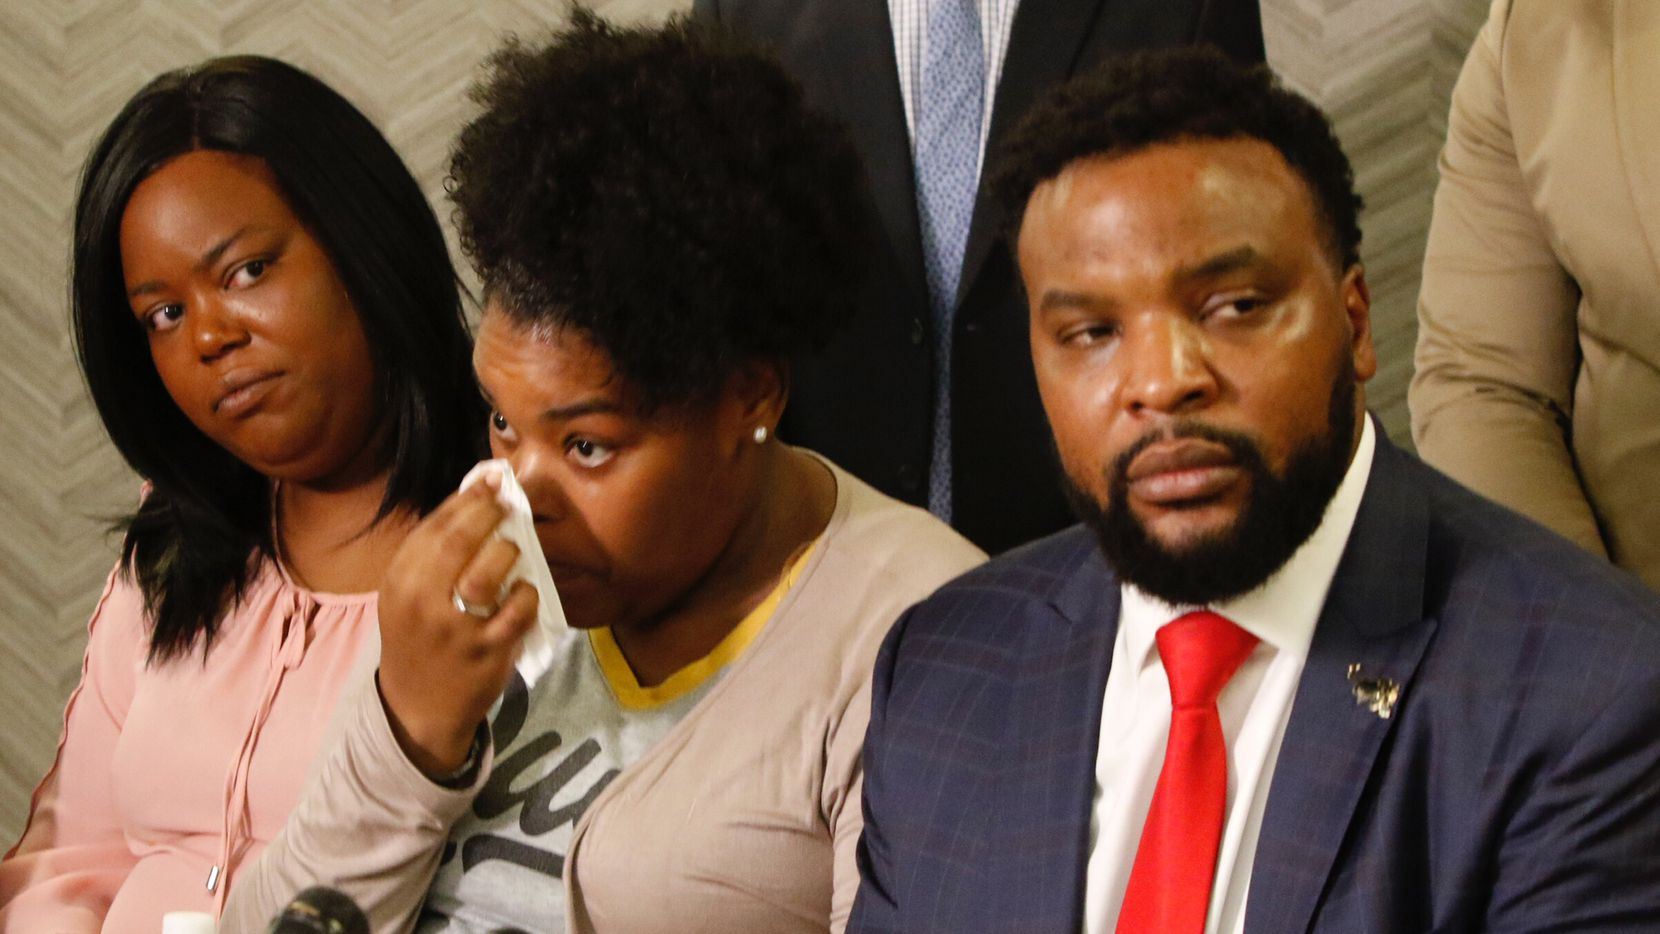 Amber Carr, center, wipes a tear as her sister, Ashley Carr, left, and attorney Lee Merritt, right, listen to their brother Adarius Carr talk about their sister, Atatiana Jefferson during a press conference at 1910 Pacific on Monday morning, October 14, 2019 in downtown Dallas. Atatiana Jefferson, a 28-year-old black woman, was shot and killed in her home by a white Fort Worth police officer during a welfare check.